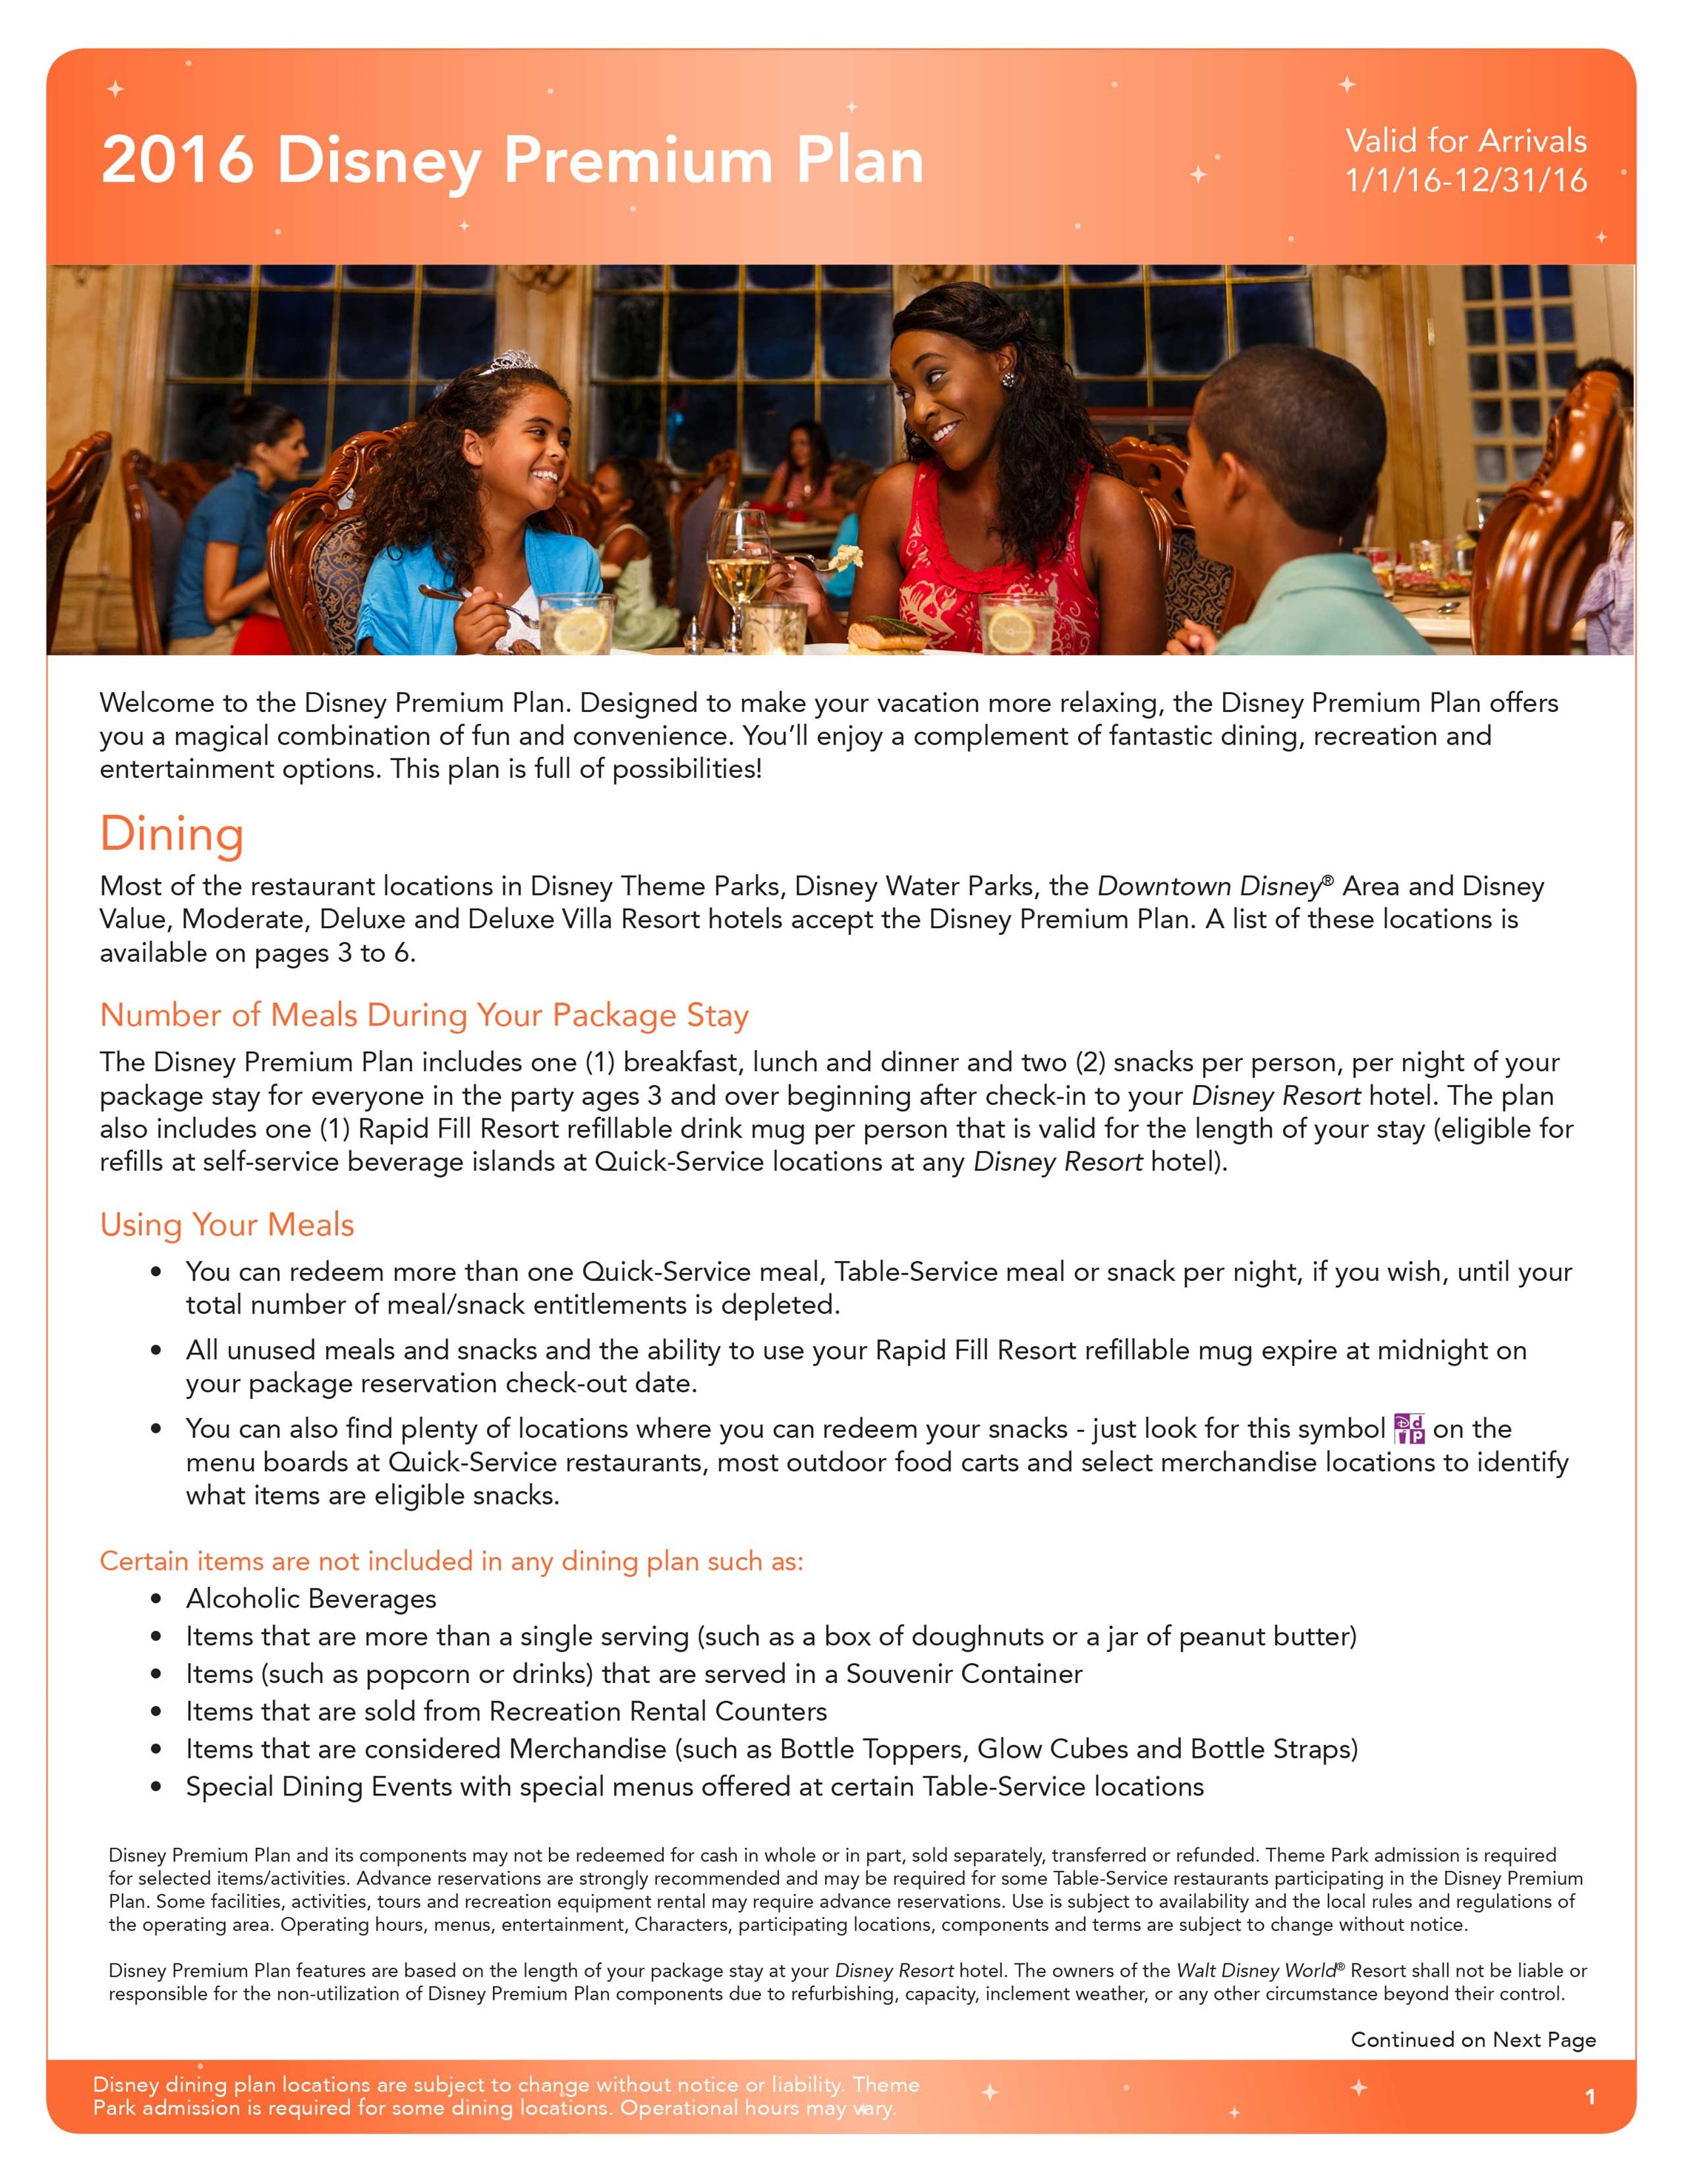 2016 Disney Dining Plan brochures